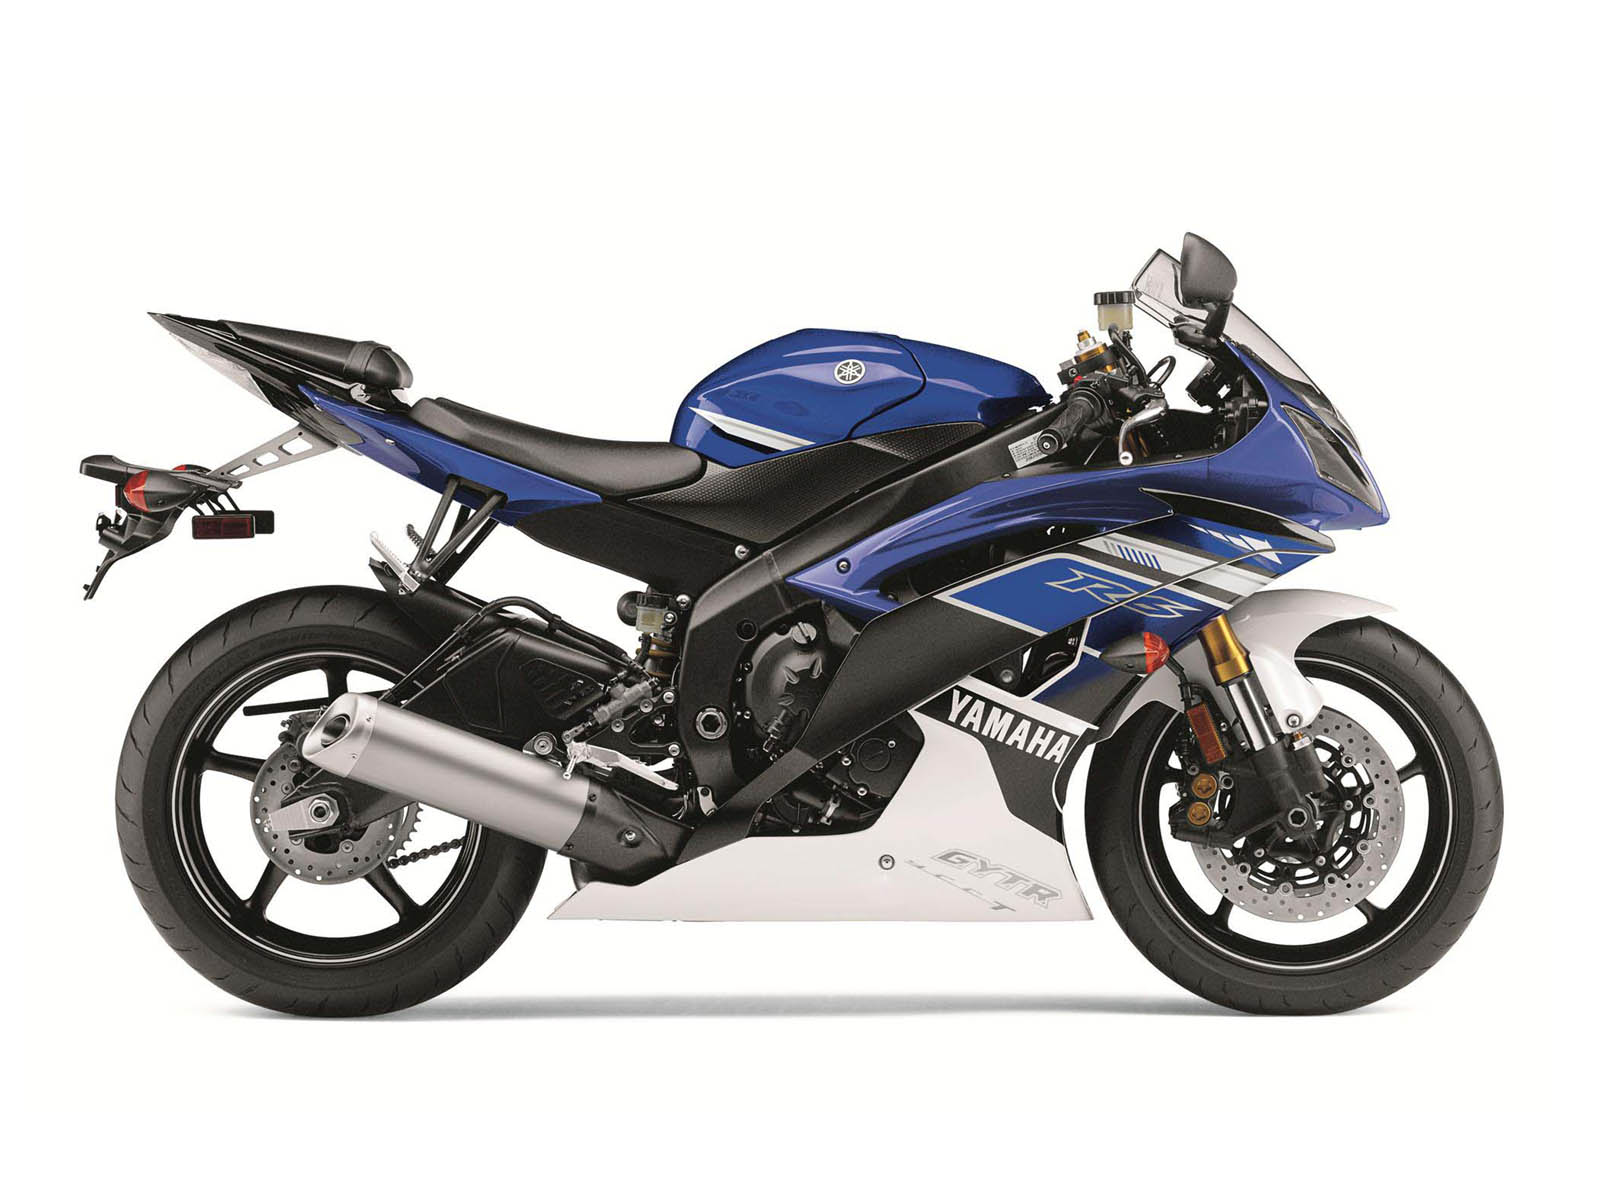 Yamaha YZF R6 Bike Wallpapers Desktop Wallpapers Online 1600x1200